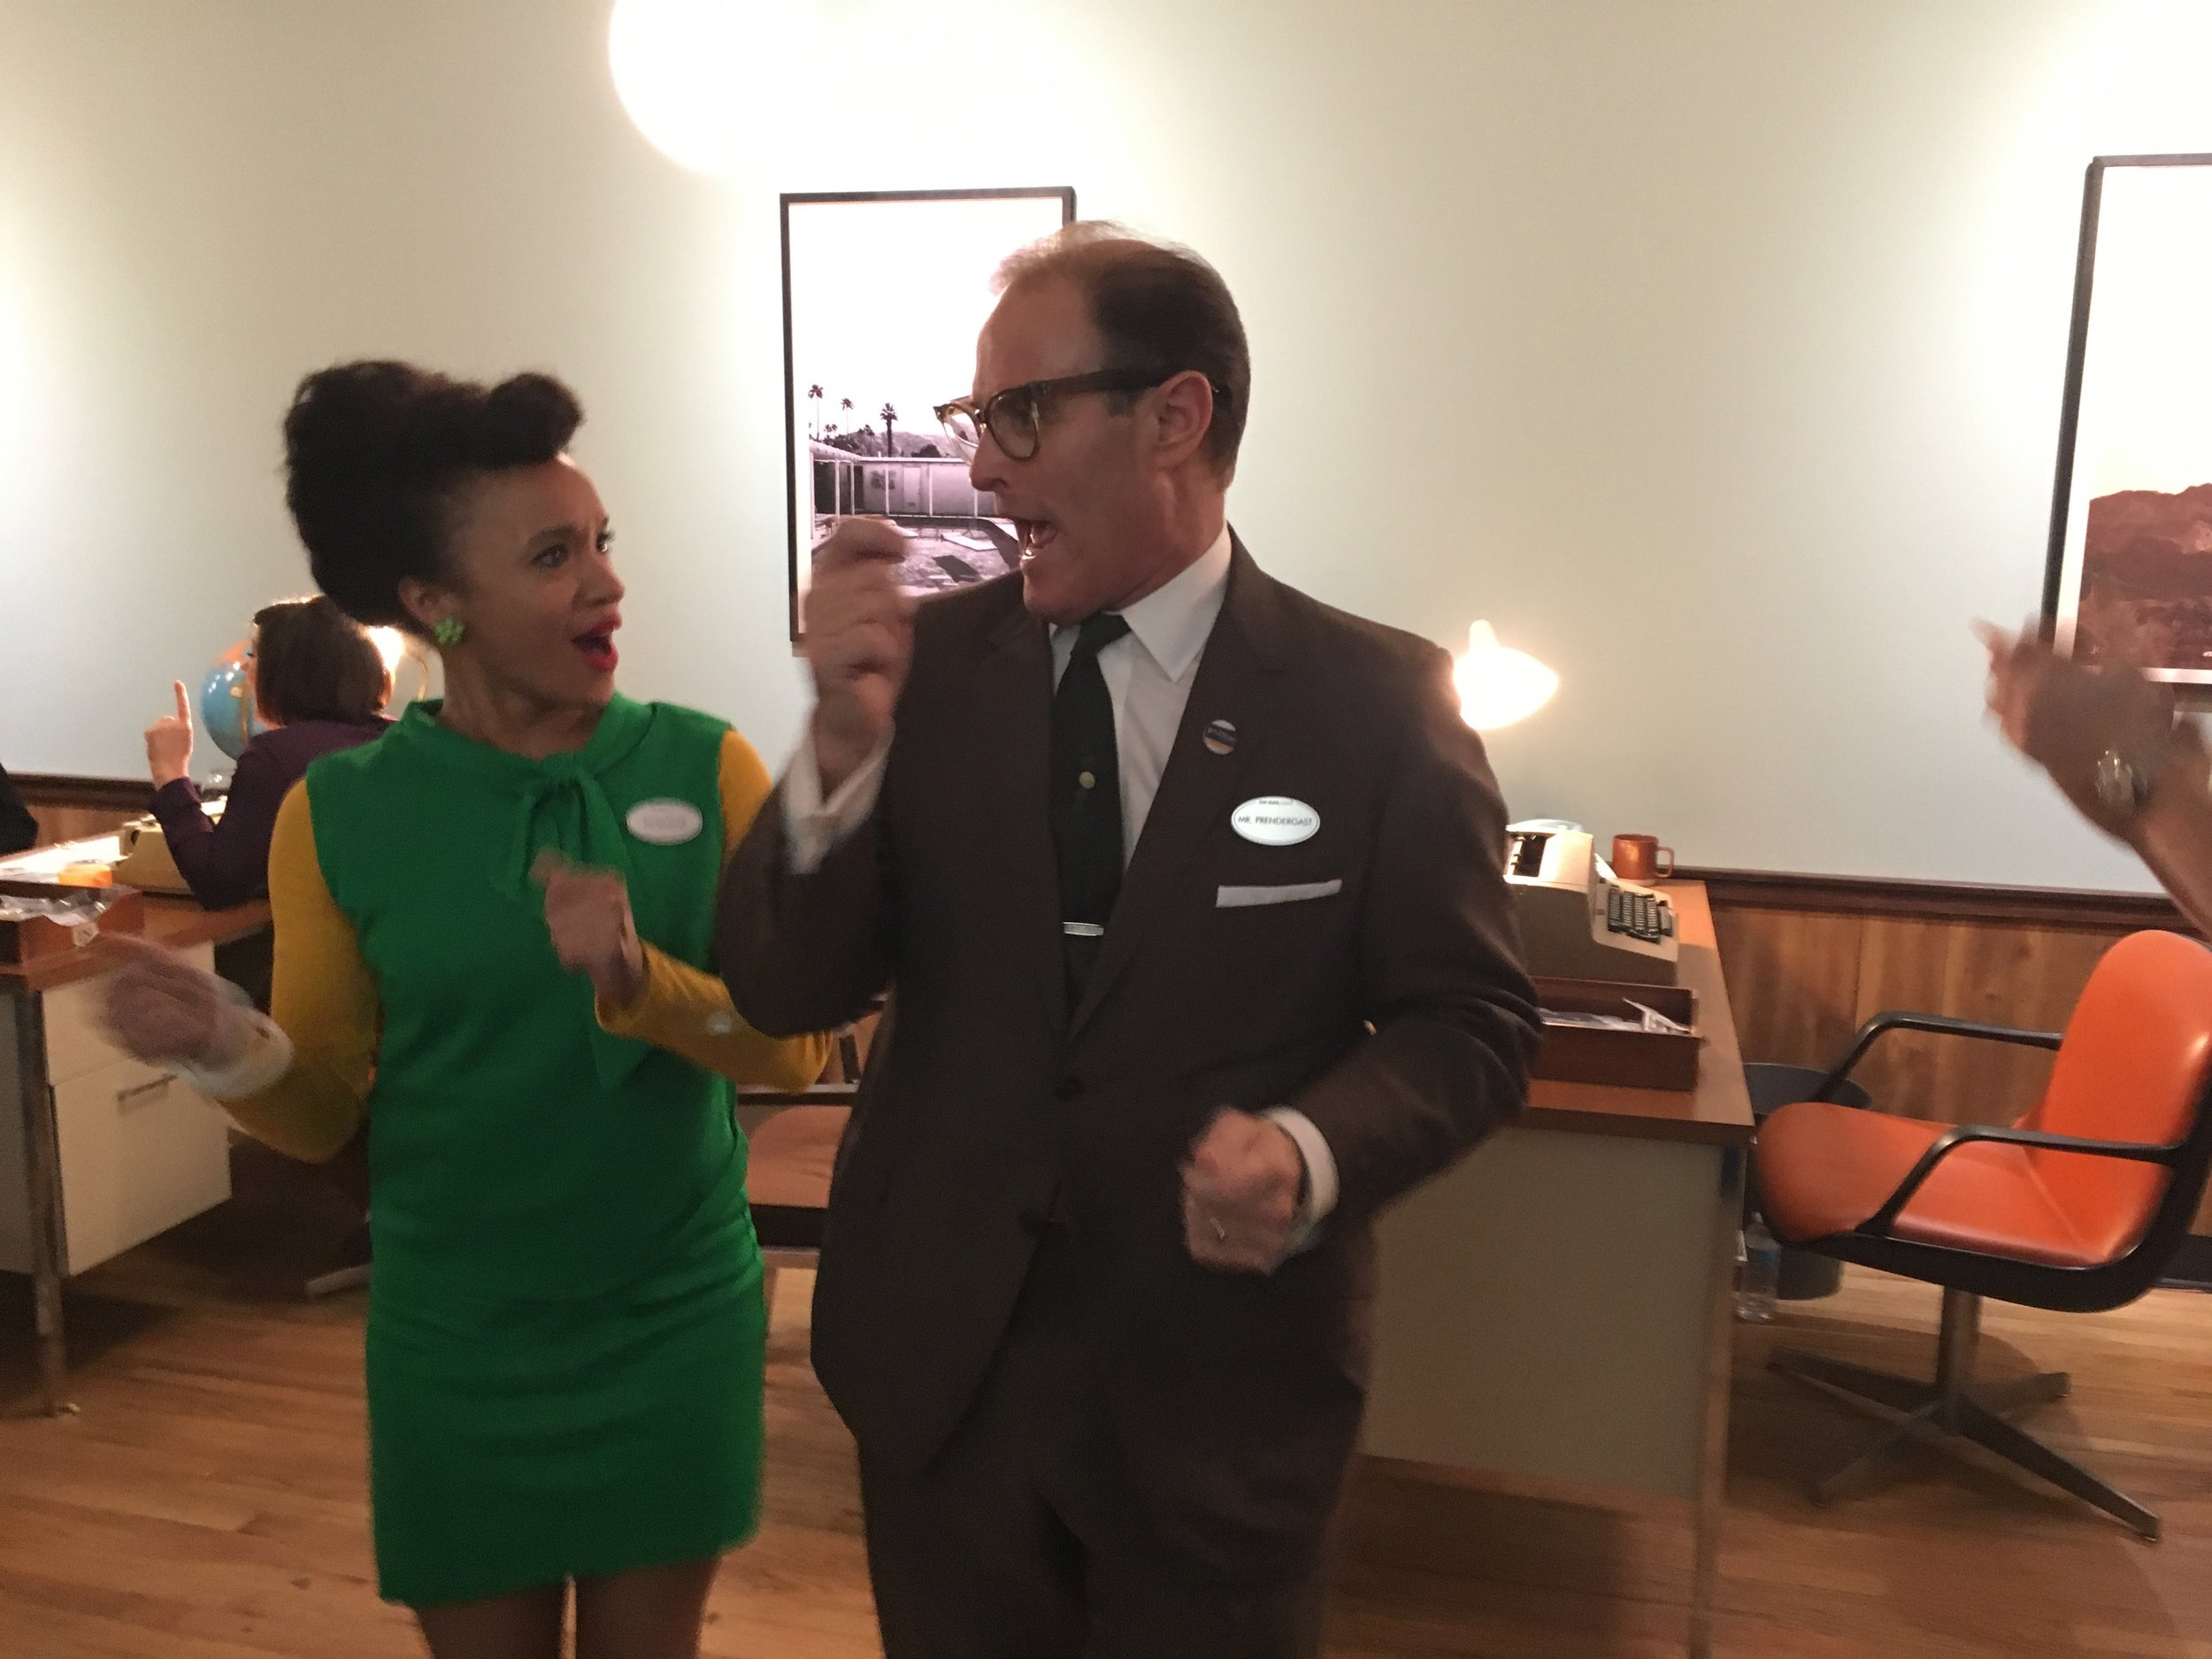 The quirky owner and a travel agent breaking into some 1960s dancing